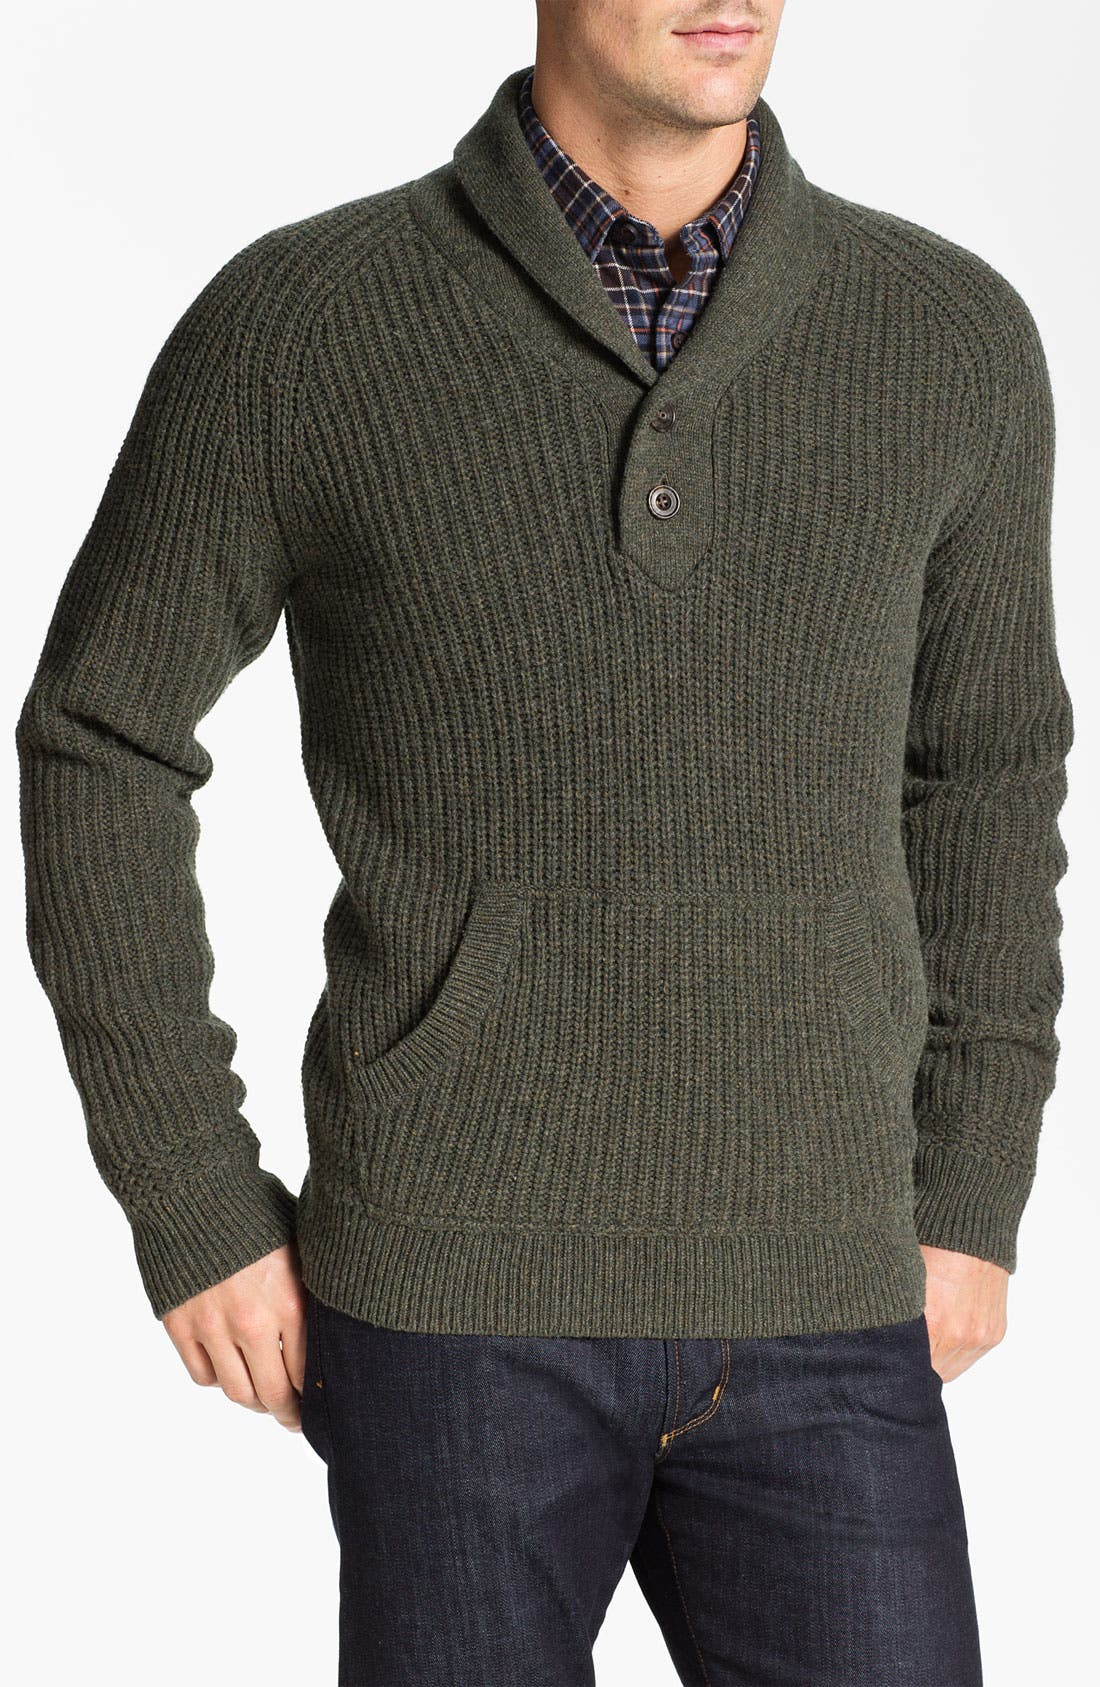 Main Image - Wallin & Bros. Shawl Collar Merino Wool Blend Sweater